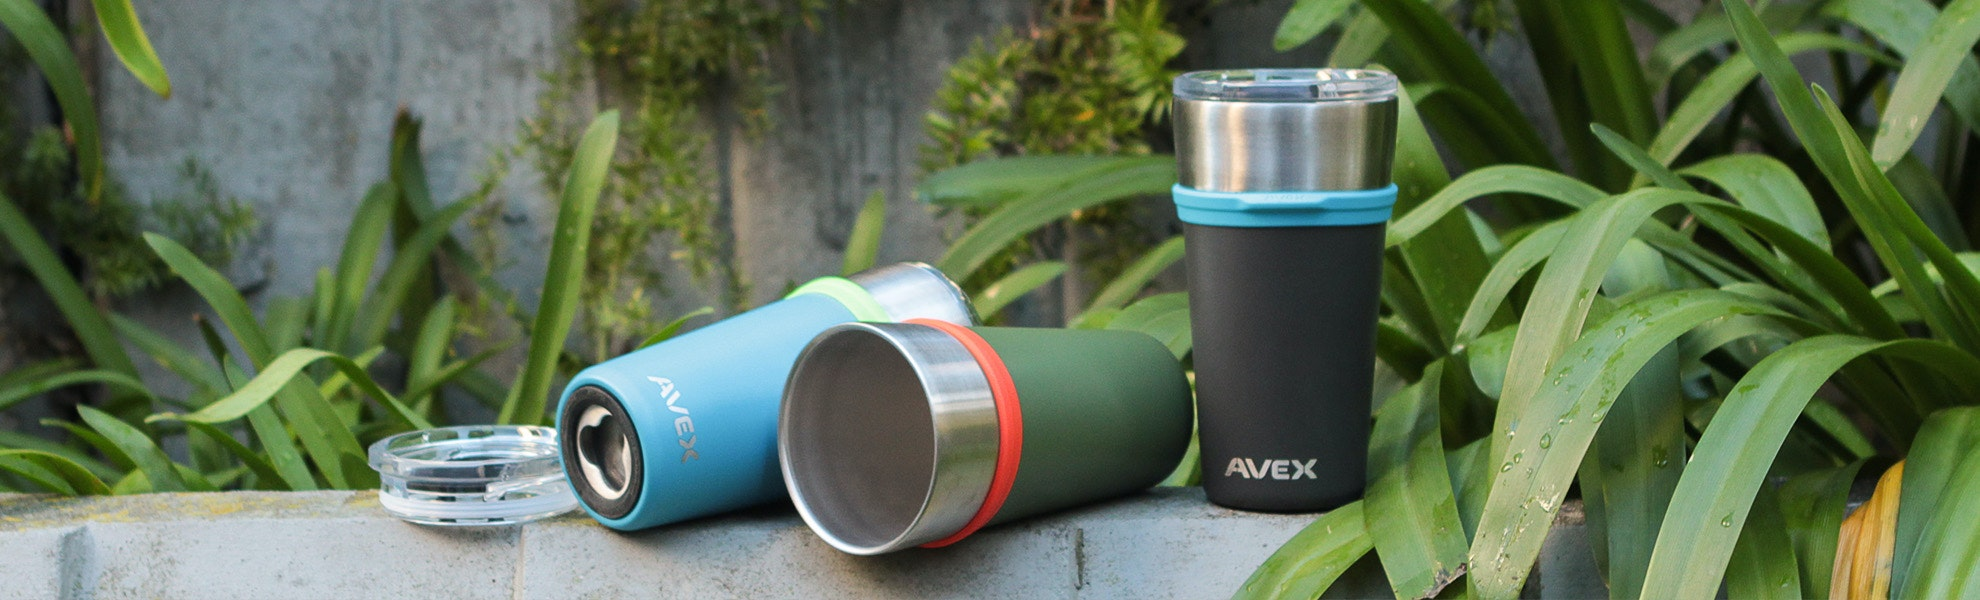 Avex Insulated Pint Glass with Lid (2-pack)